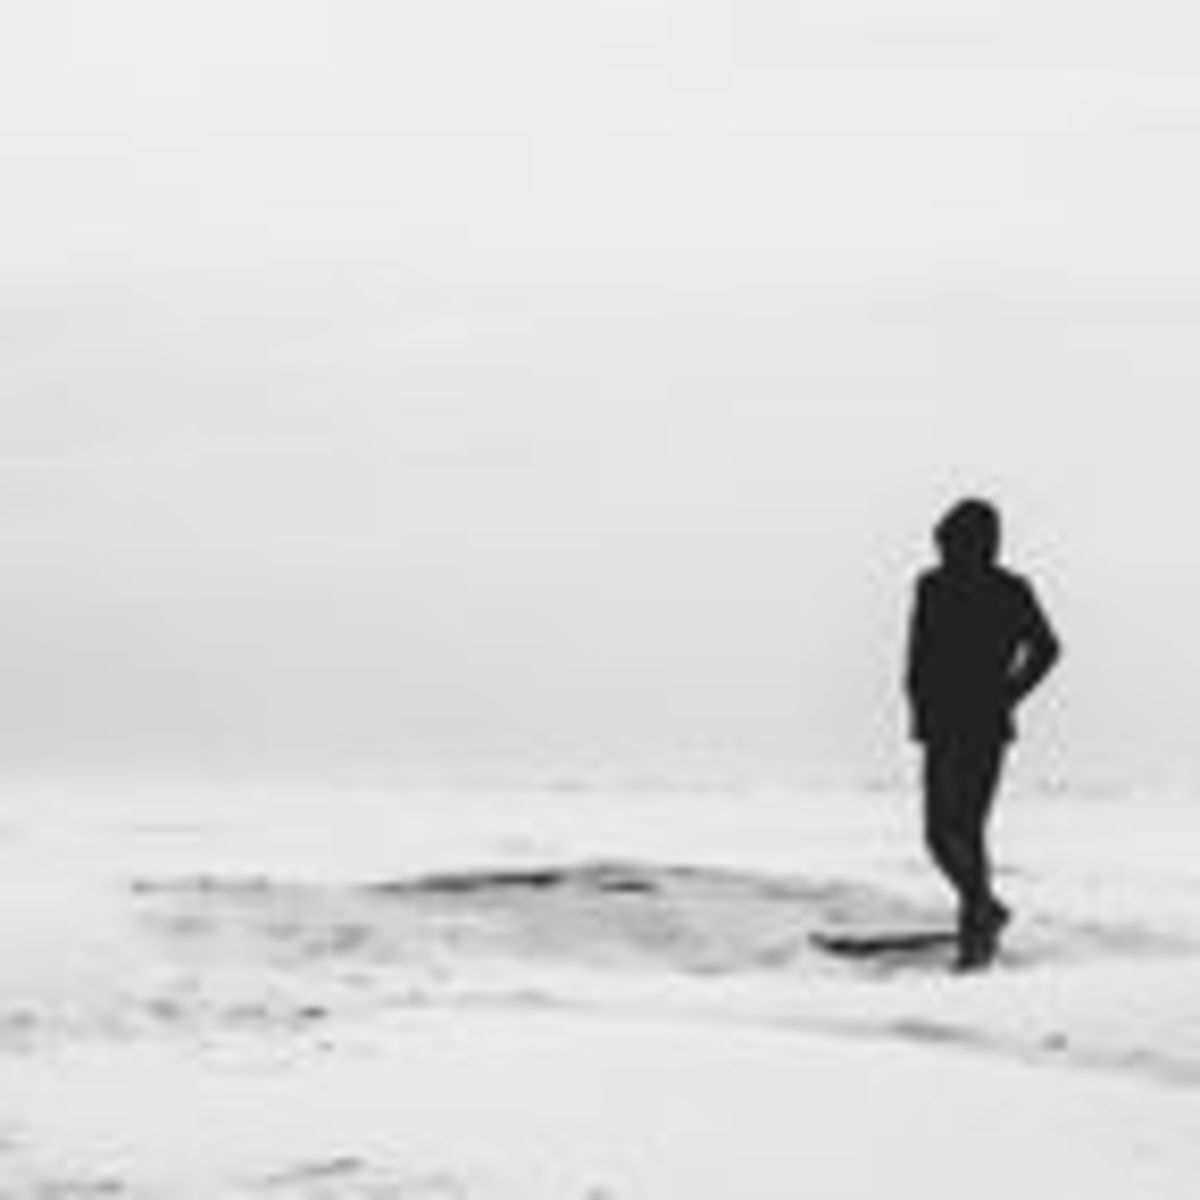 Depersonalisation: Why Do I Feel Empty and Numb? | Psychology Today